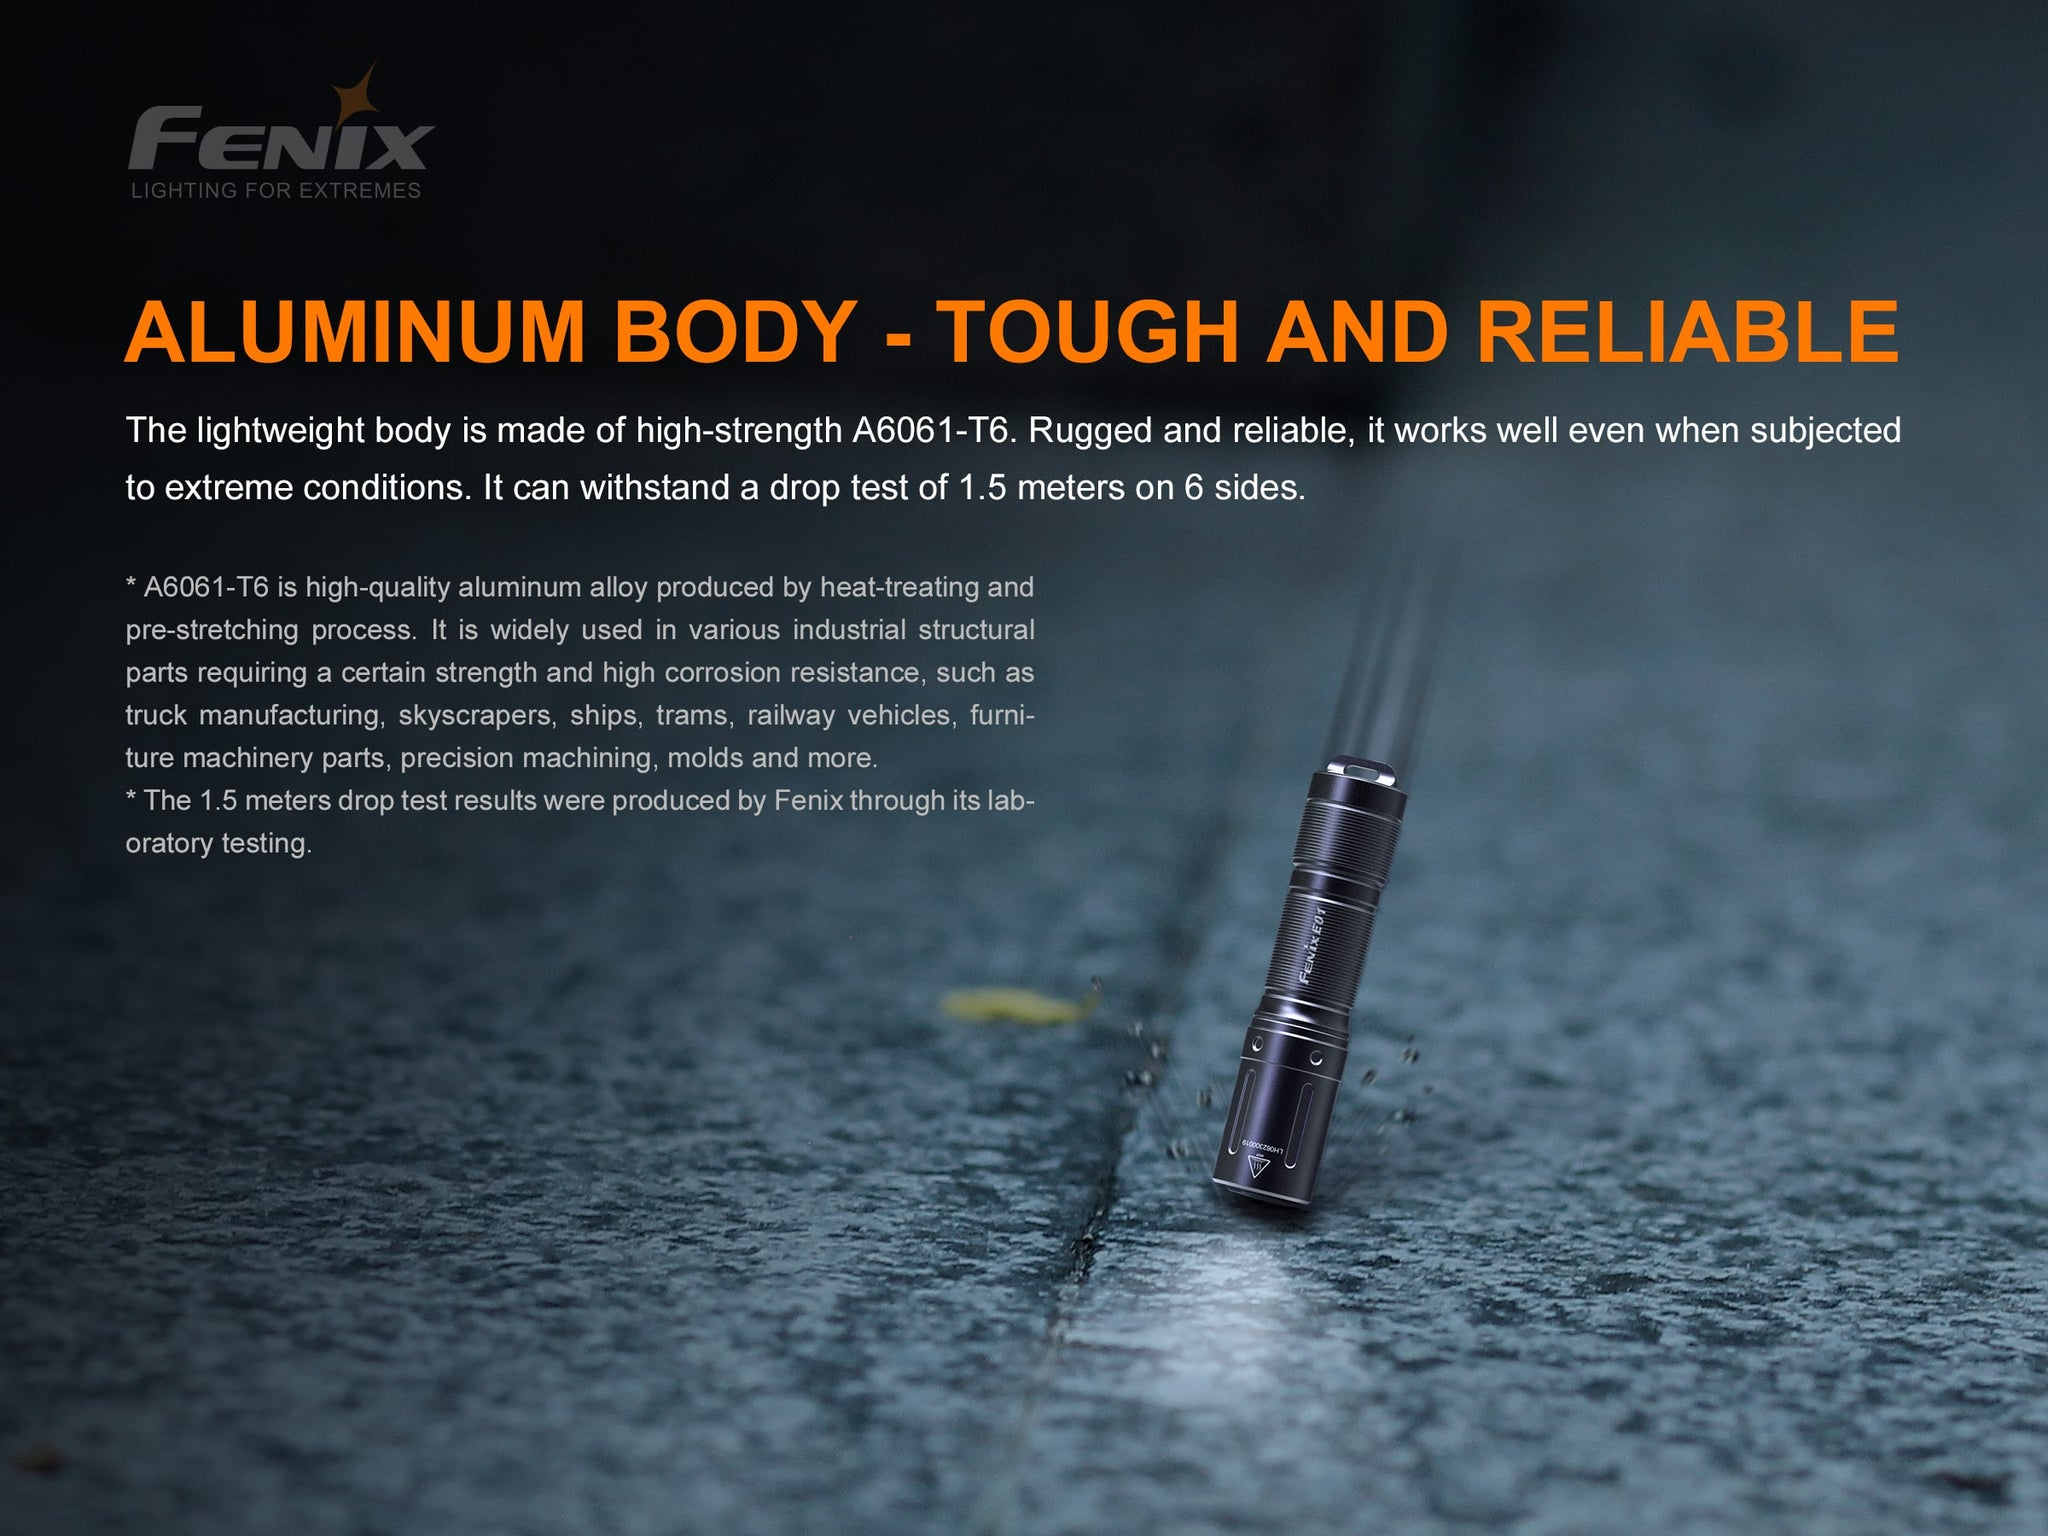 Buy Fenix E01 V2 LED Torch Light online in India, Compact Key Chain Light for EDC, AAA Battery Torch, Fenix E01